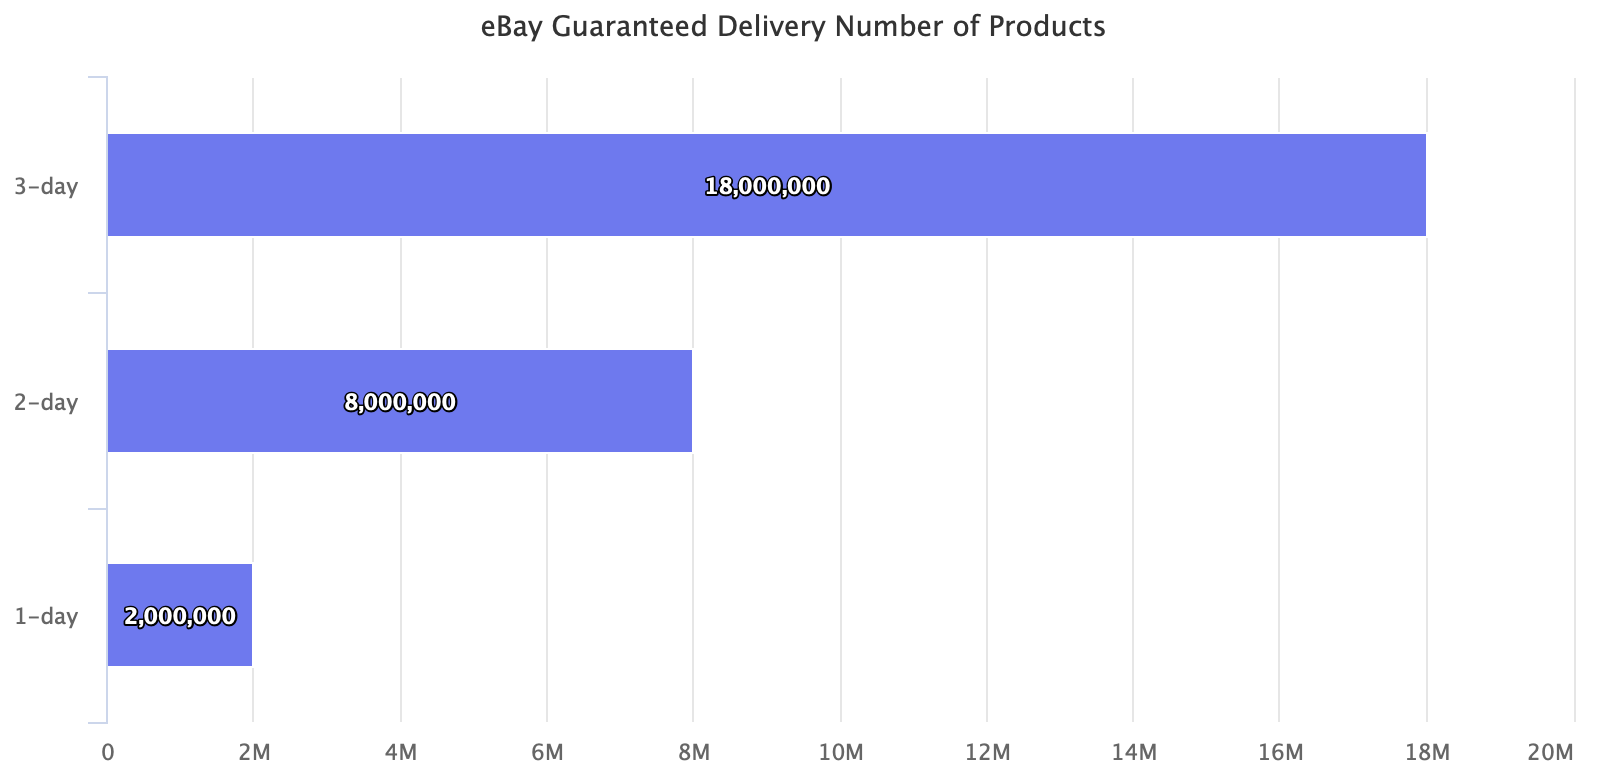 eBay Guranteed Delivery Number of Products